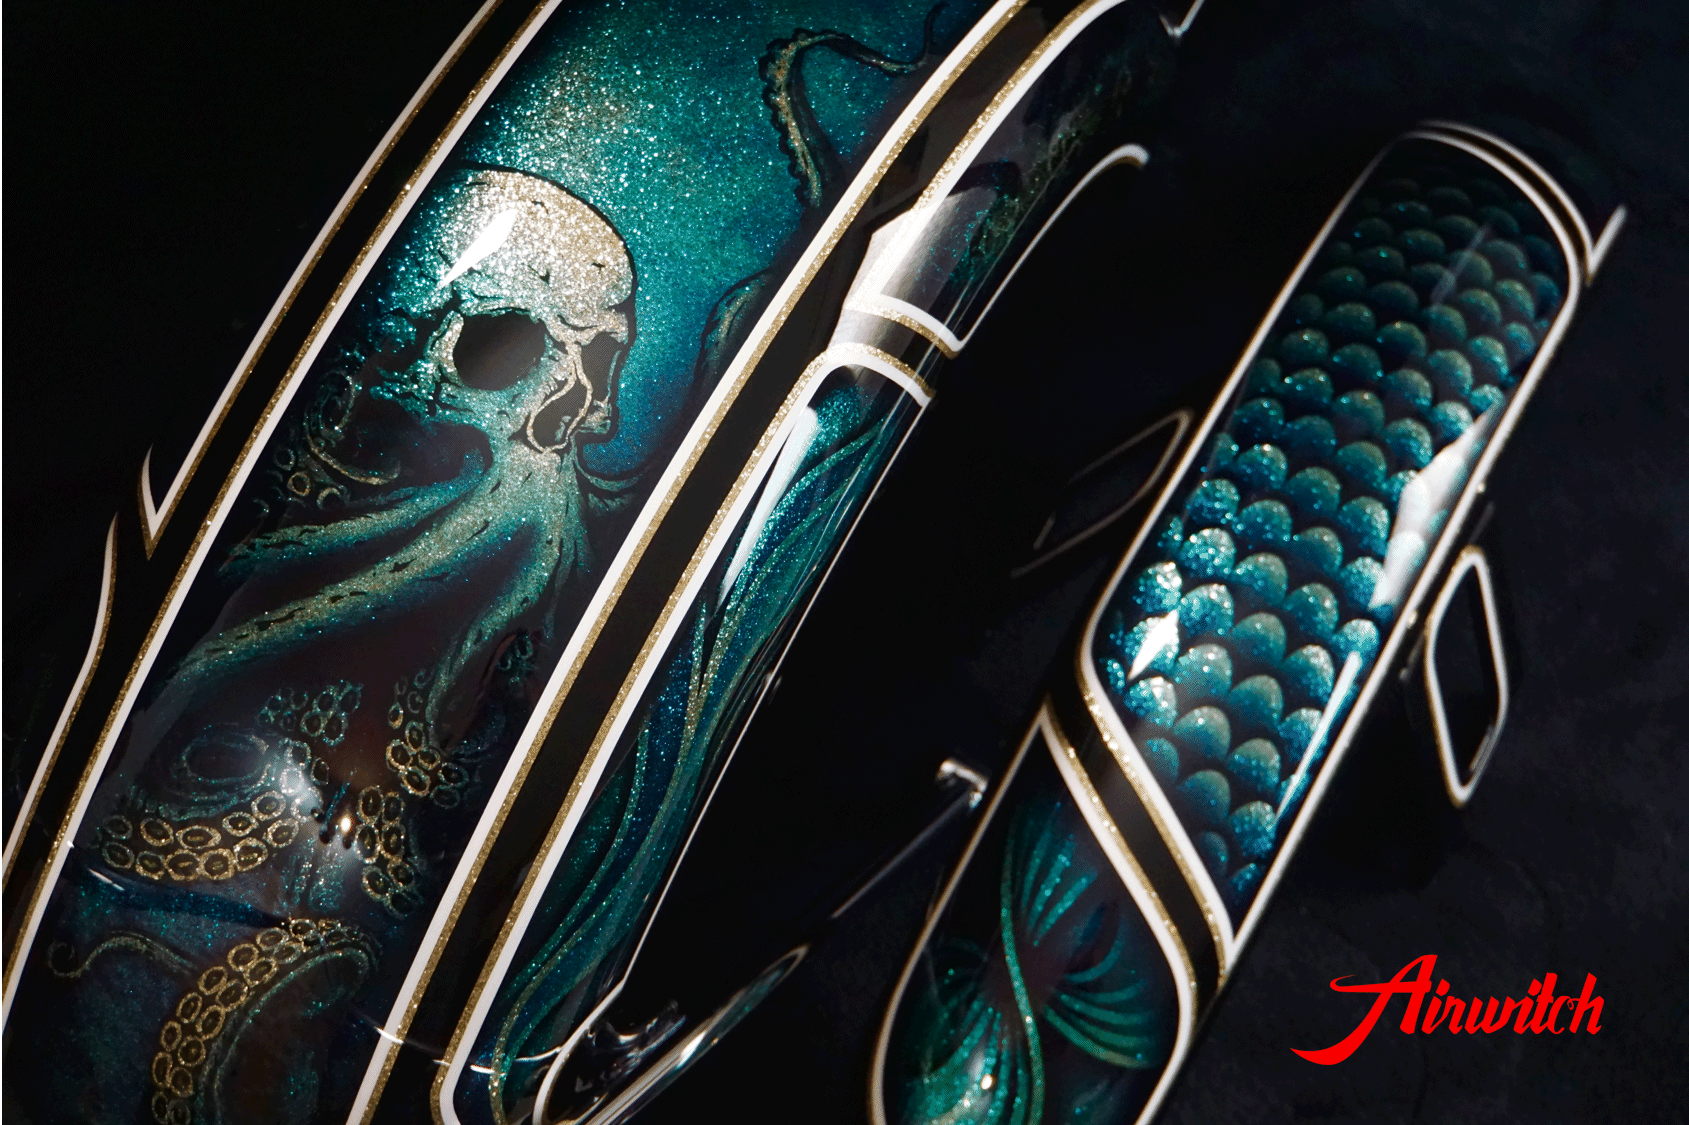 Custom Paint Harley Davidson Softail Metalflake Lackierung with octopus skull ocean blue turquoise gold black